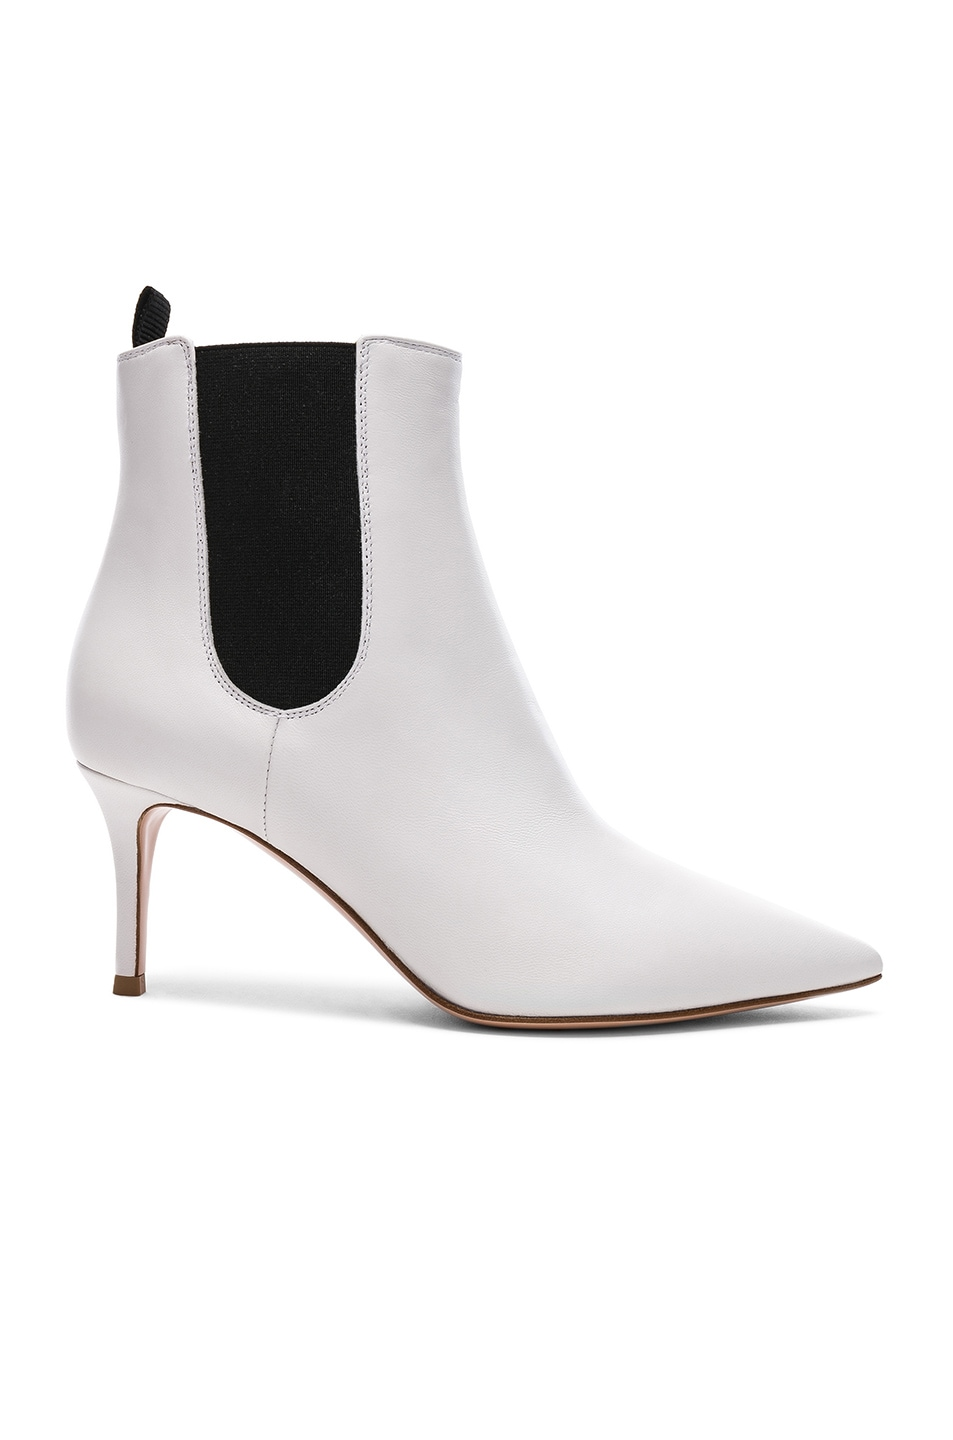 Image 1 of Gianvito Rossi for FWRD Leather Evan Stiletto Ankle Boots in White & Black